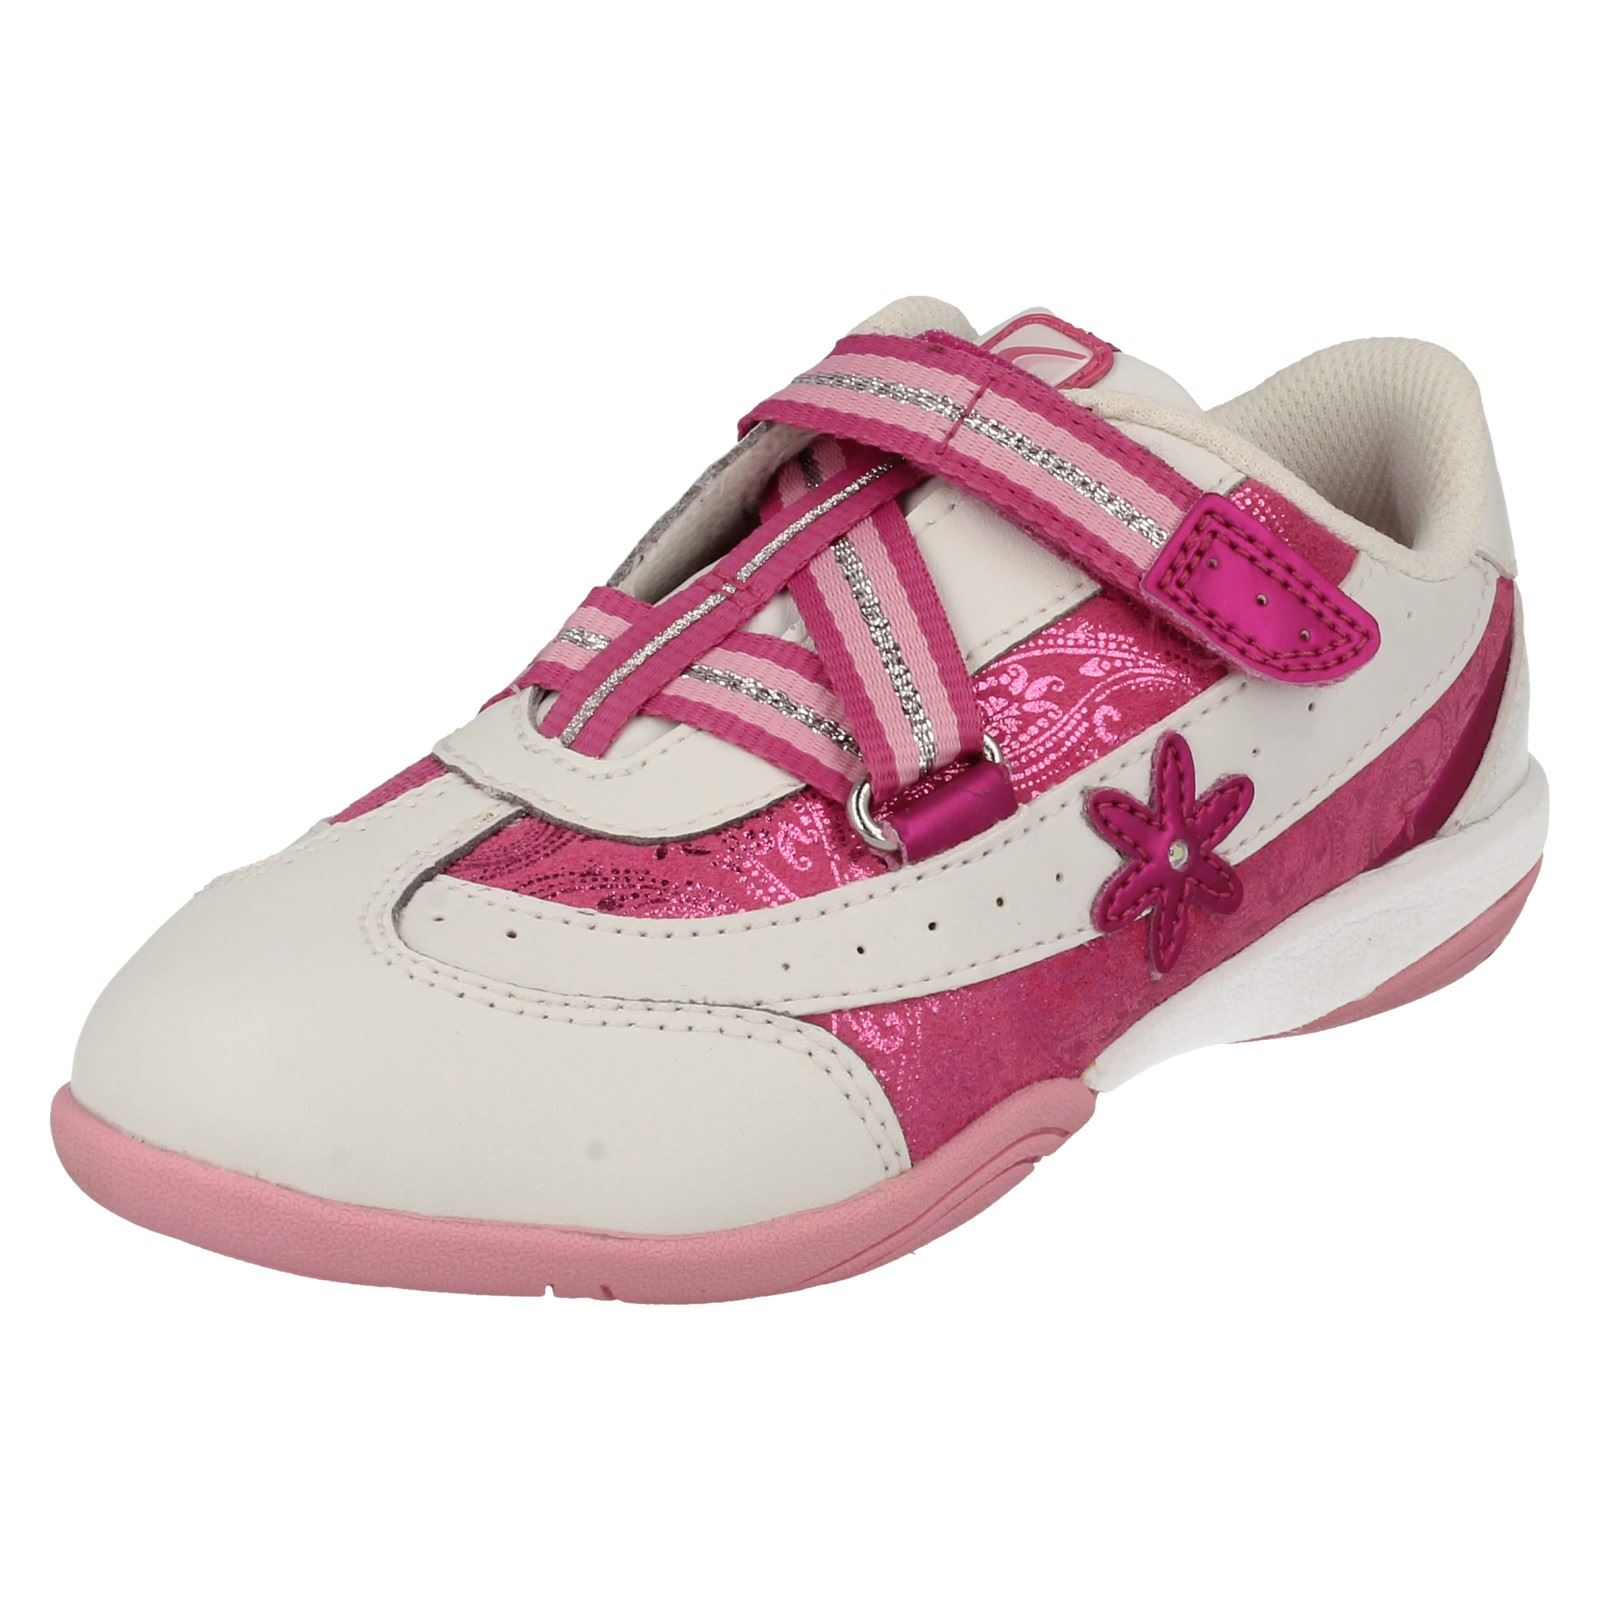 12db0e9c8d0 Details about Girls Cica by Clarks Daisy Diva Trainer